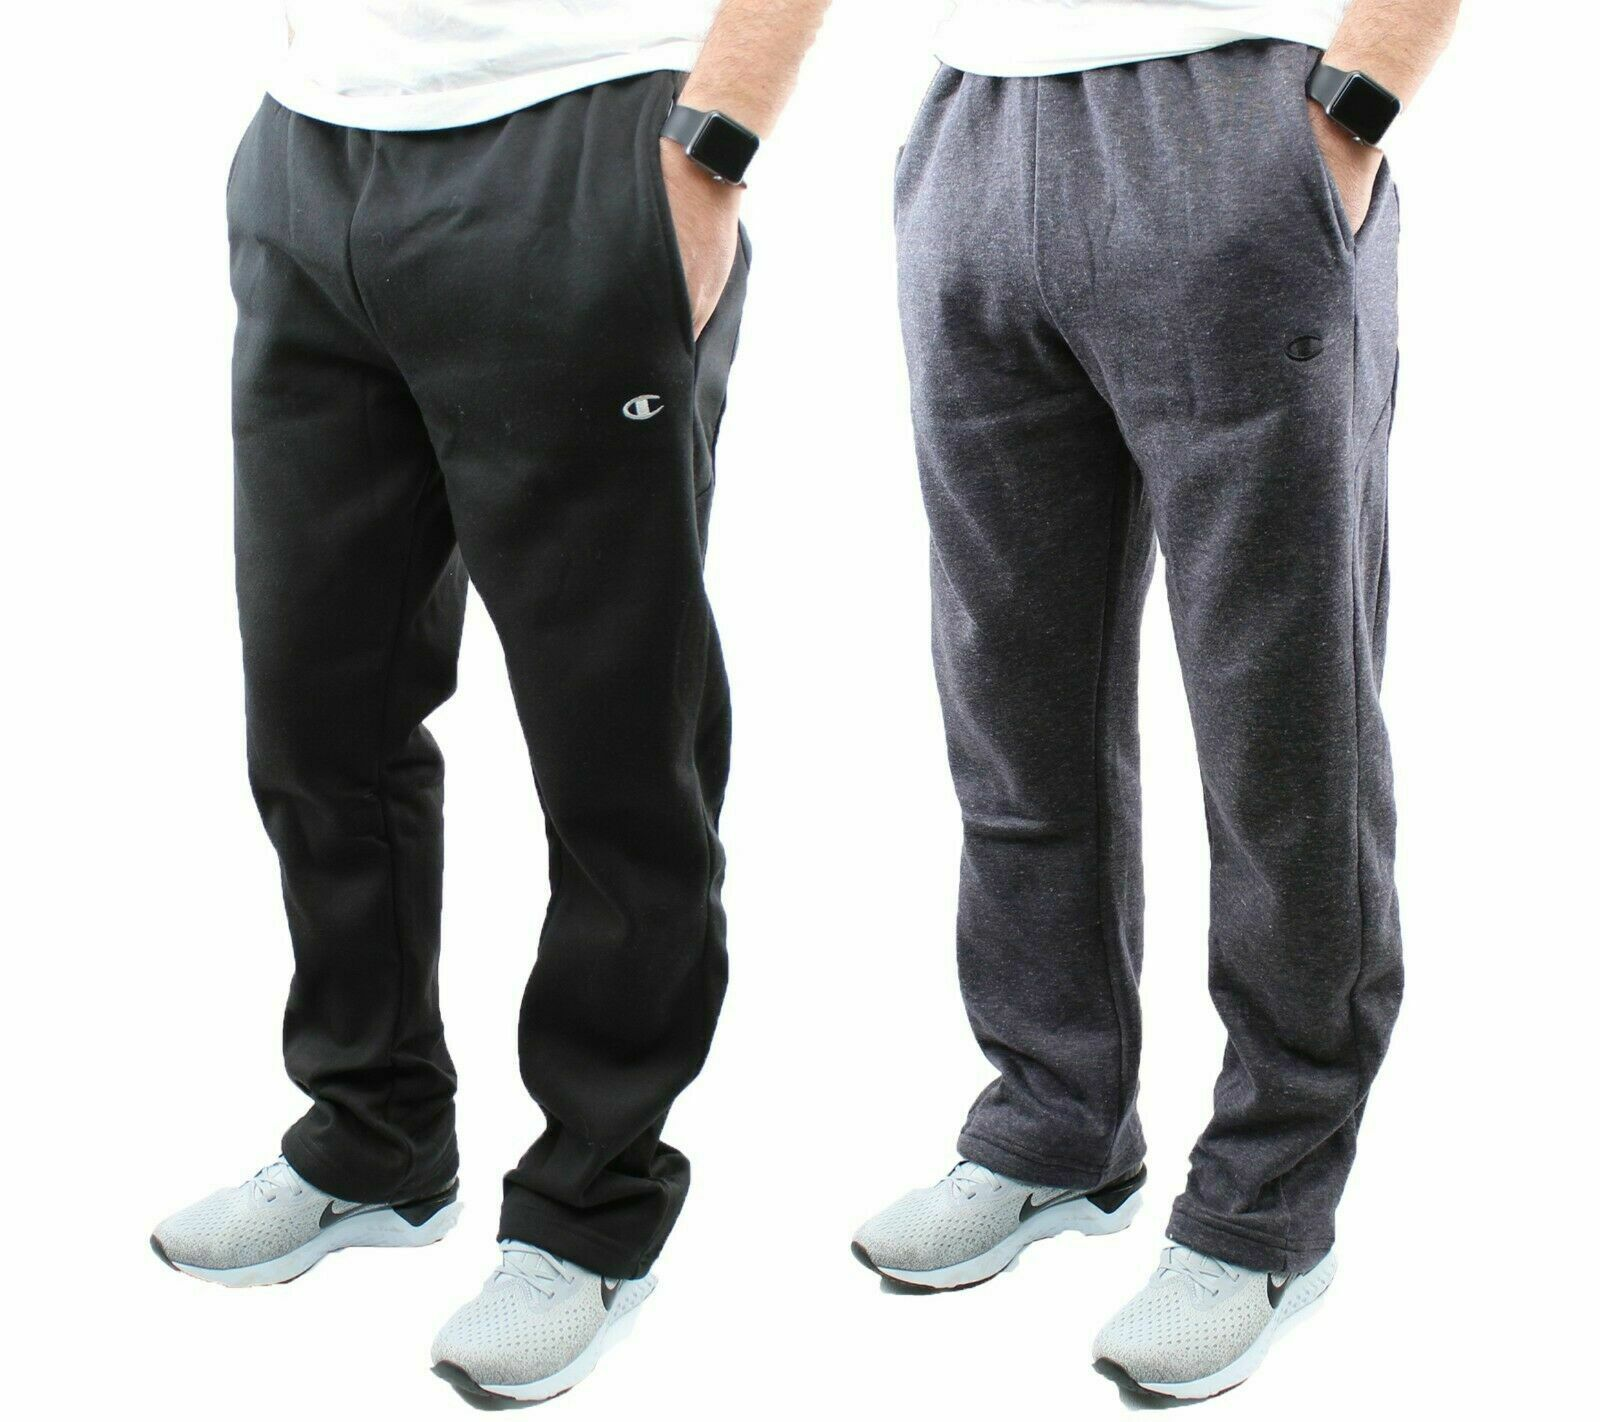 Champion Fleece Sweatpants Men's Athletic Training Pants Act